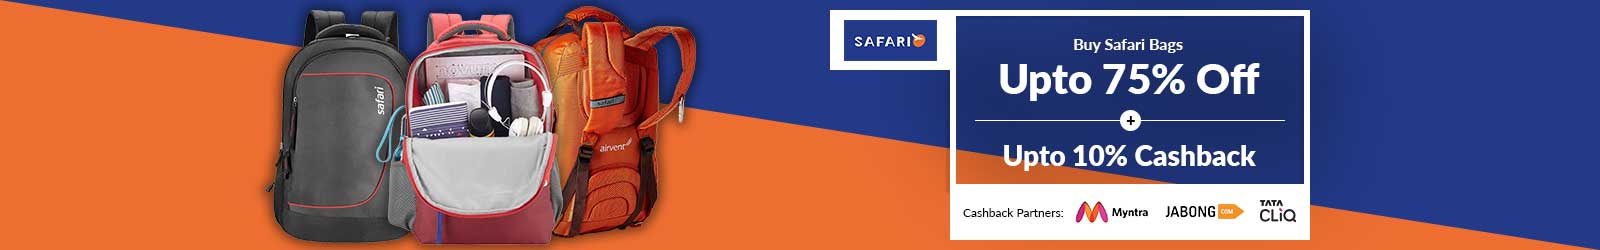 745898bbd5 Safari Bags Price List India, Offers: 75% Discount + 10% Cashback, 2019